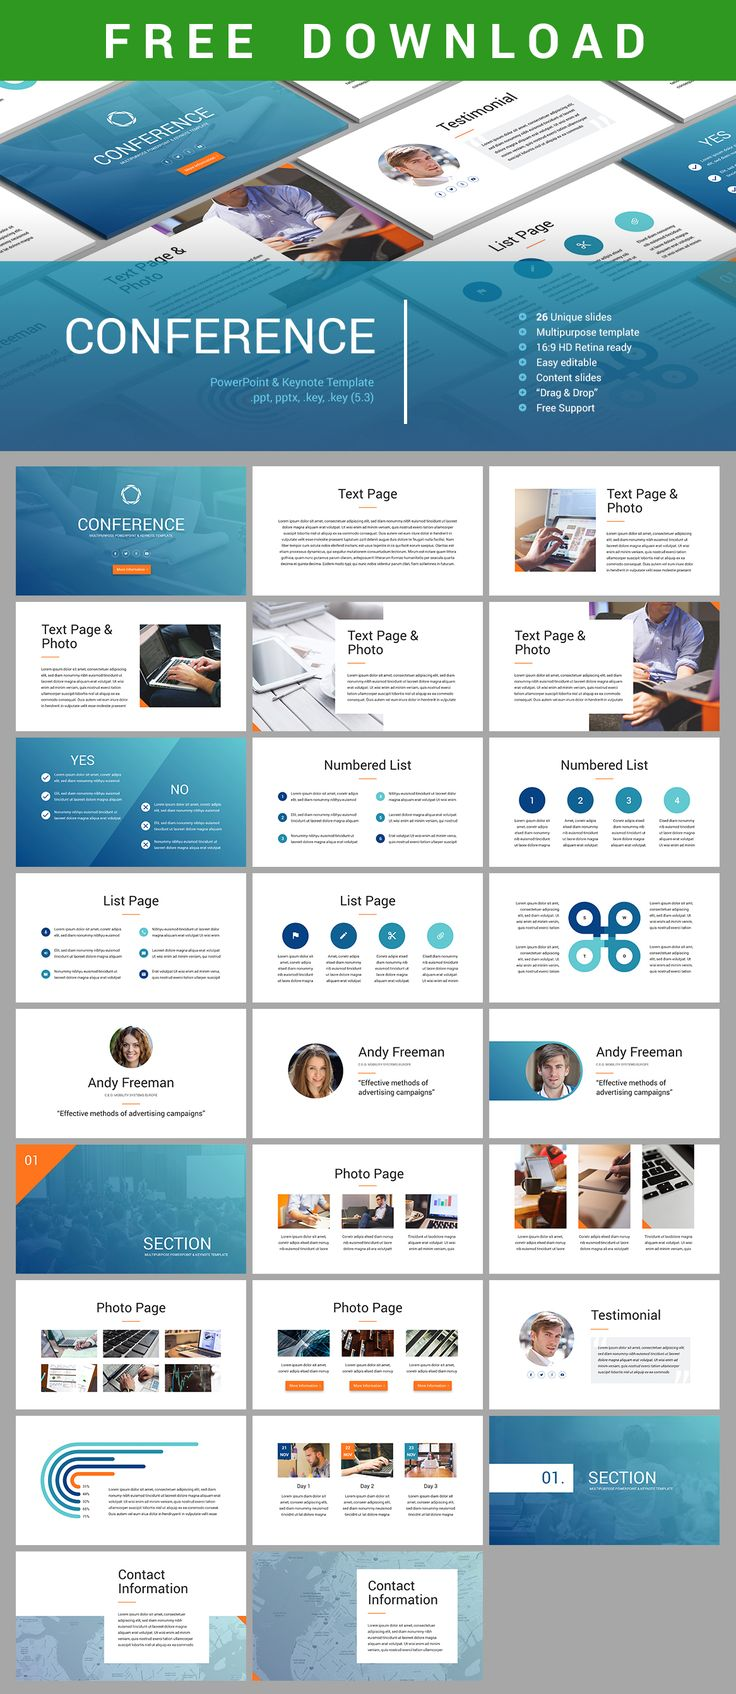 Free Download #Conference #PowerPoint & #Keynote #Template http://site2max.pro/promony/ #ppt #pptx #key #marketing #slide #presentation